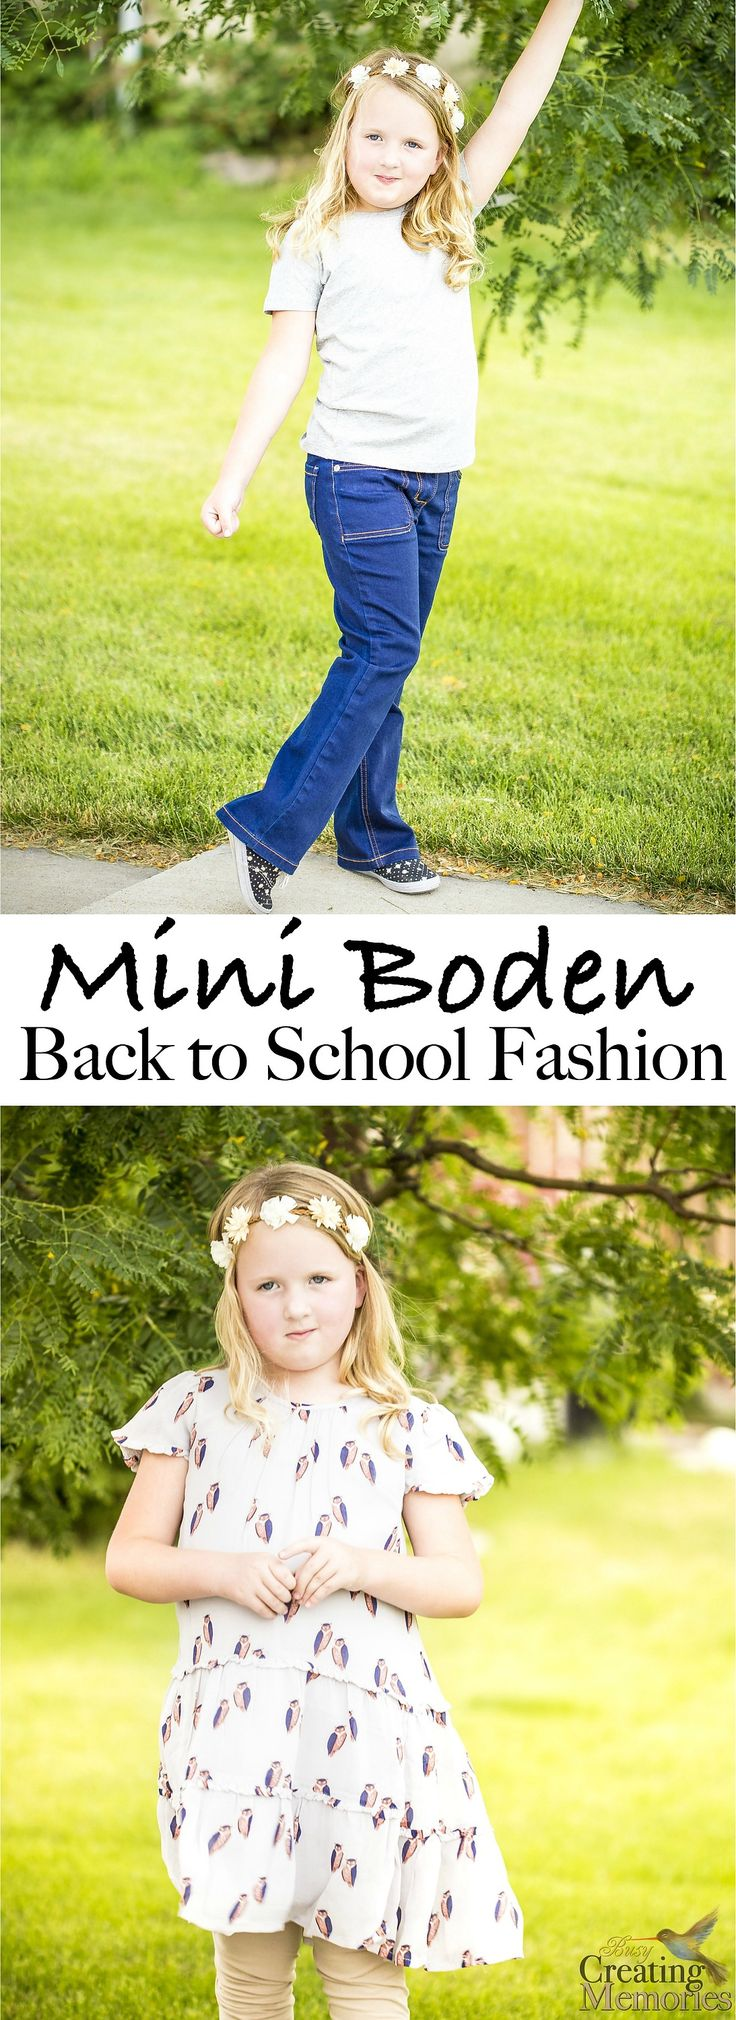 361 Best Beauty Fashion Images On Pinterest Diy D Island Casual Wrinkle Reborn Discover Unique And Witty Kids Clothing Just In Time For Back To School At Mini